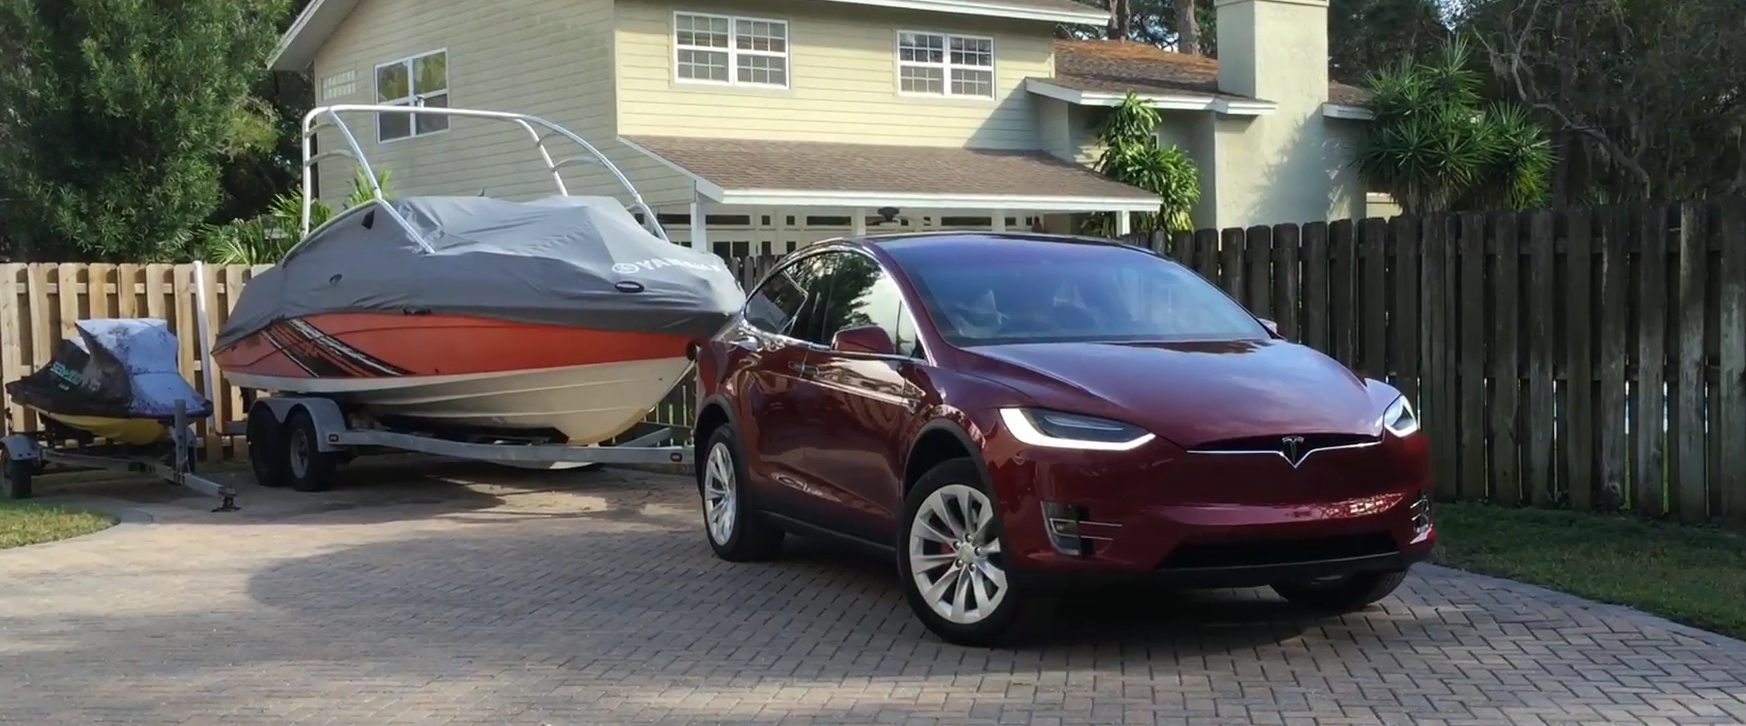 Model X towing a boat - Max Kennedy youtube